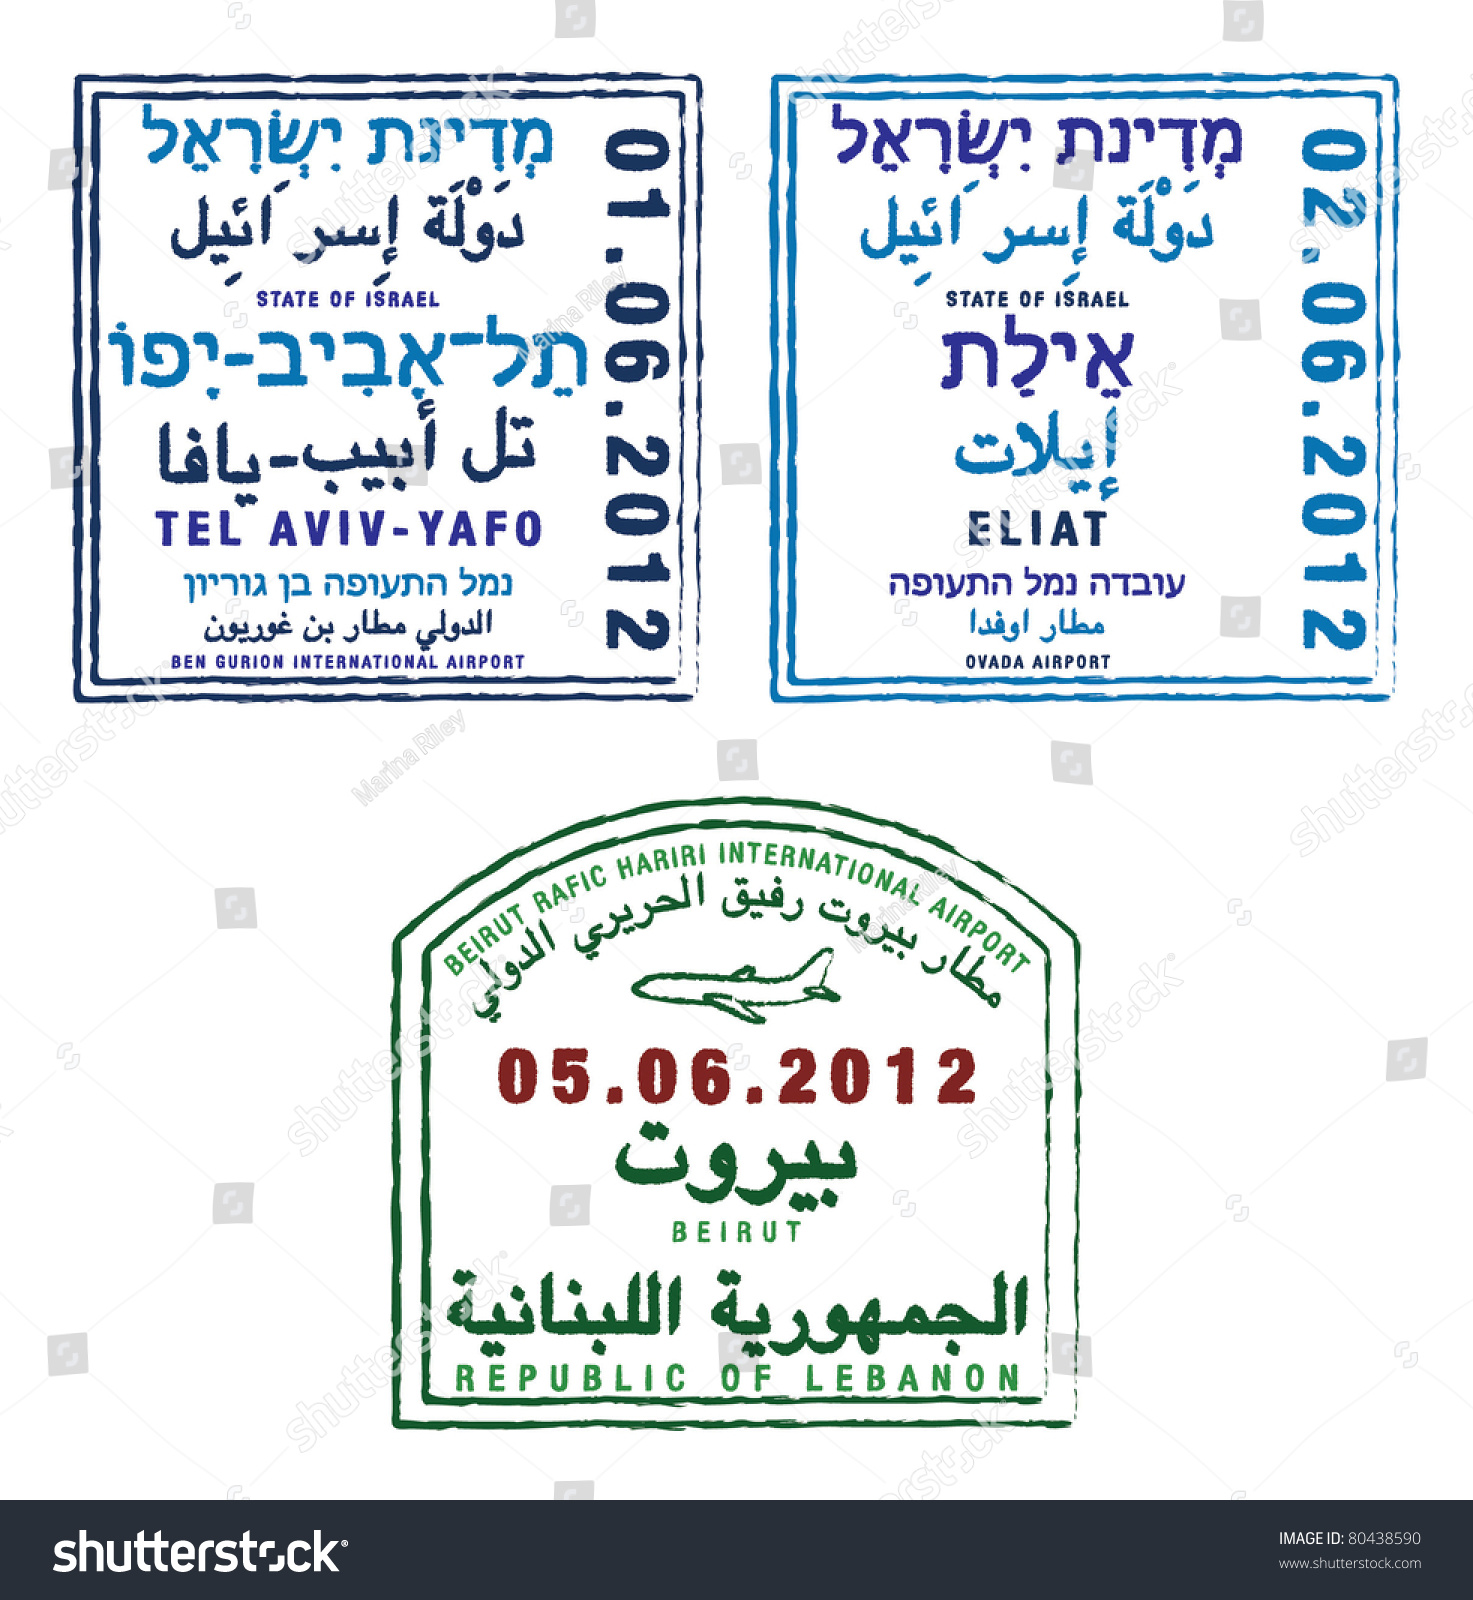 Stylized Passport Stamps Of Israel And Lebanon In Vector Format